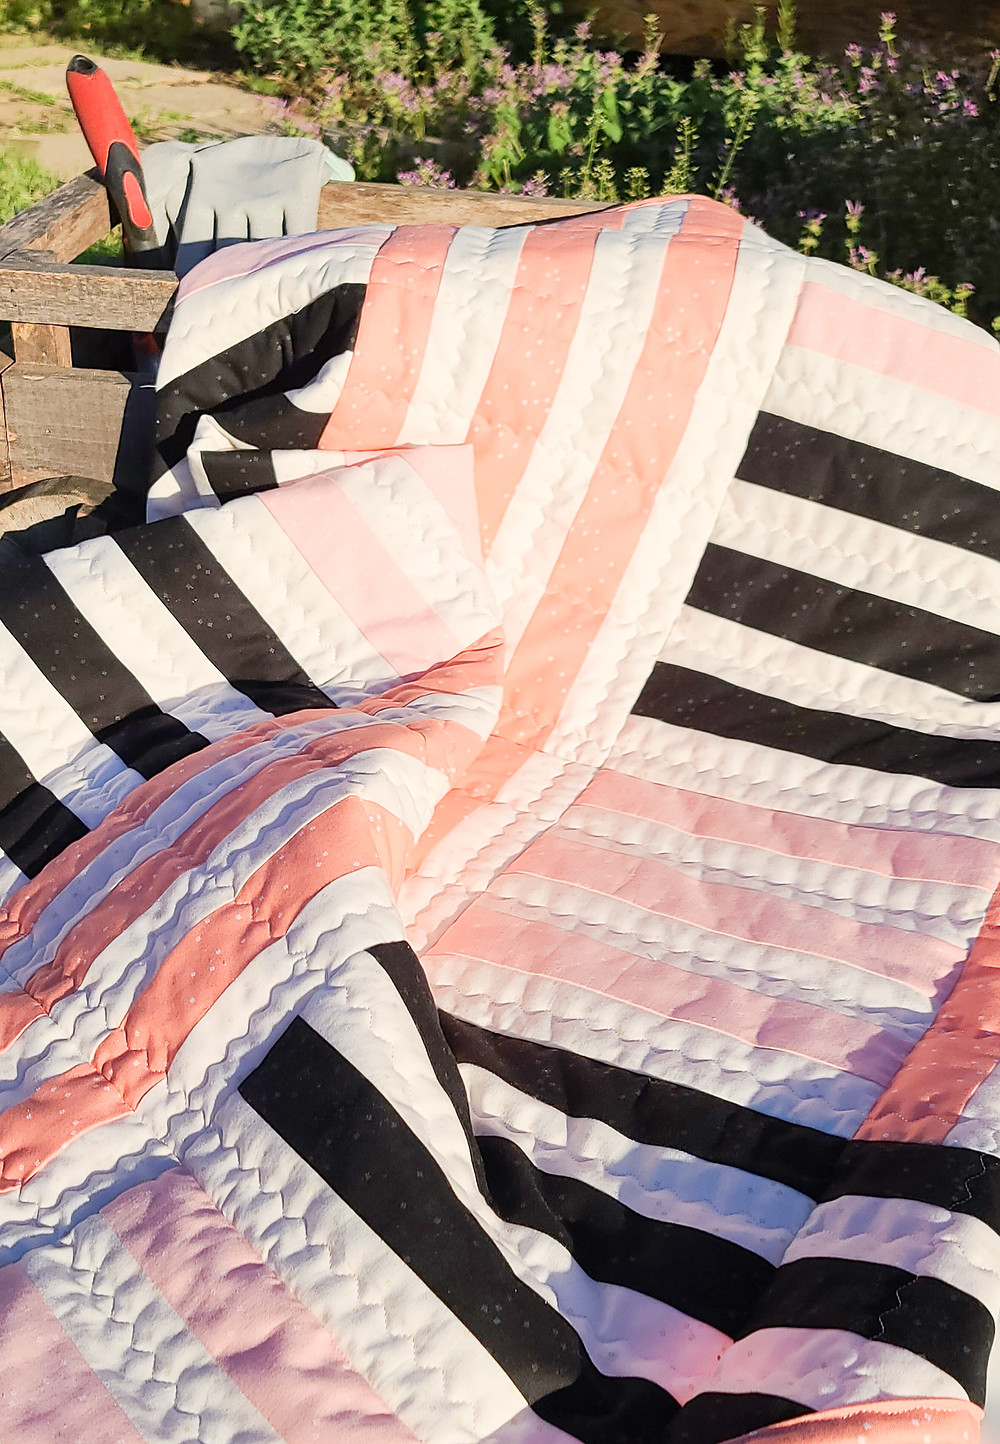 The warm morning sun shining on qult made of cream, black and peach tones arranged in a woven pattern. The quilt is laying in the garden next to a pair of gloves and a small shovel.